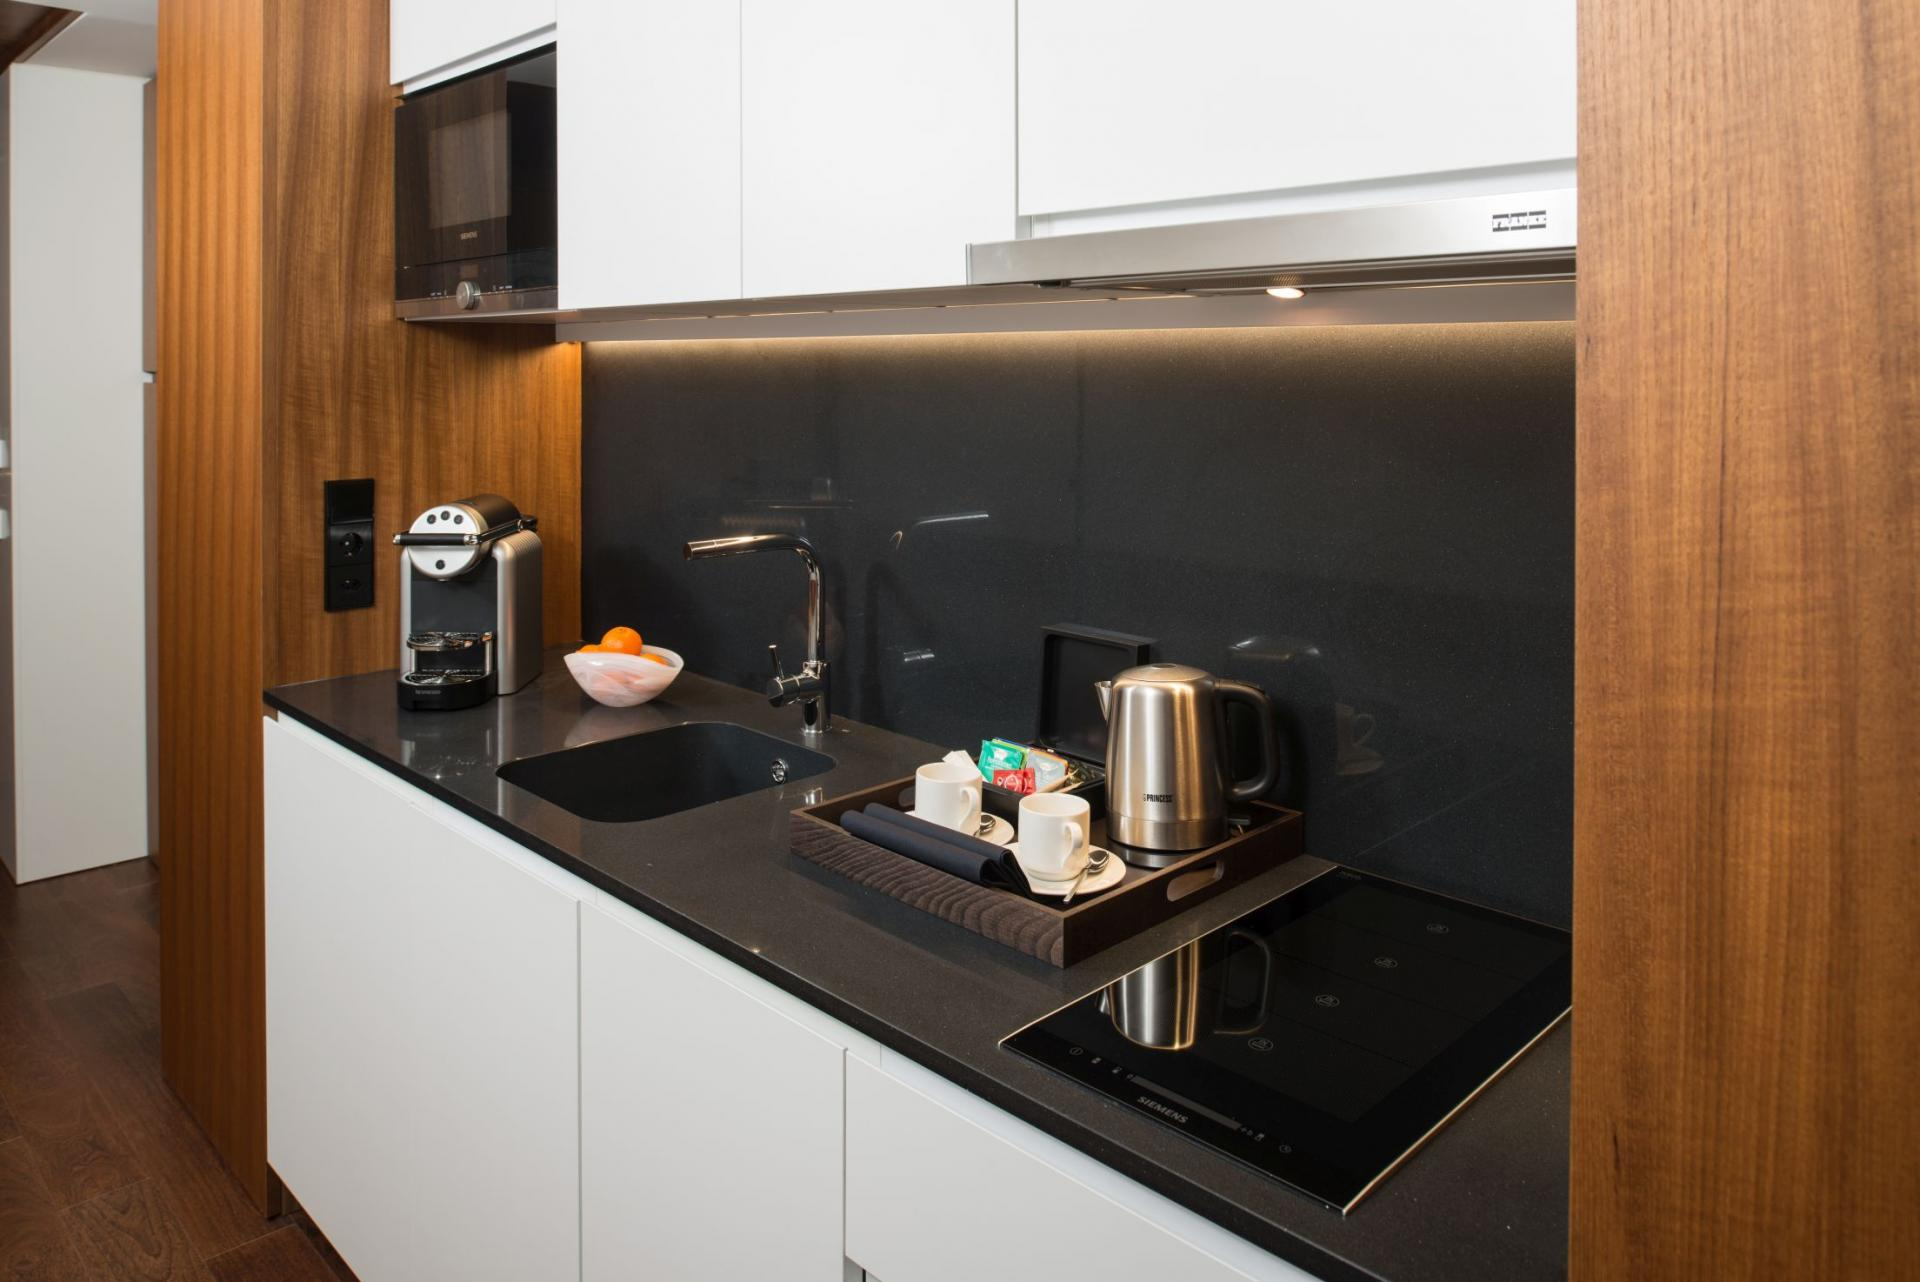 Kitchen at Fraser Suites Geneva, Centre, Geneva - Citybase Apartments